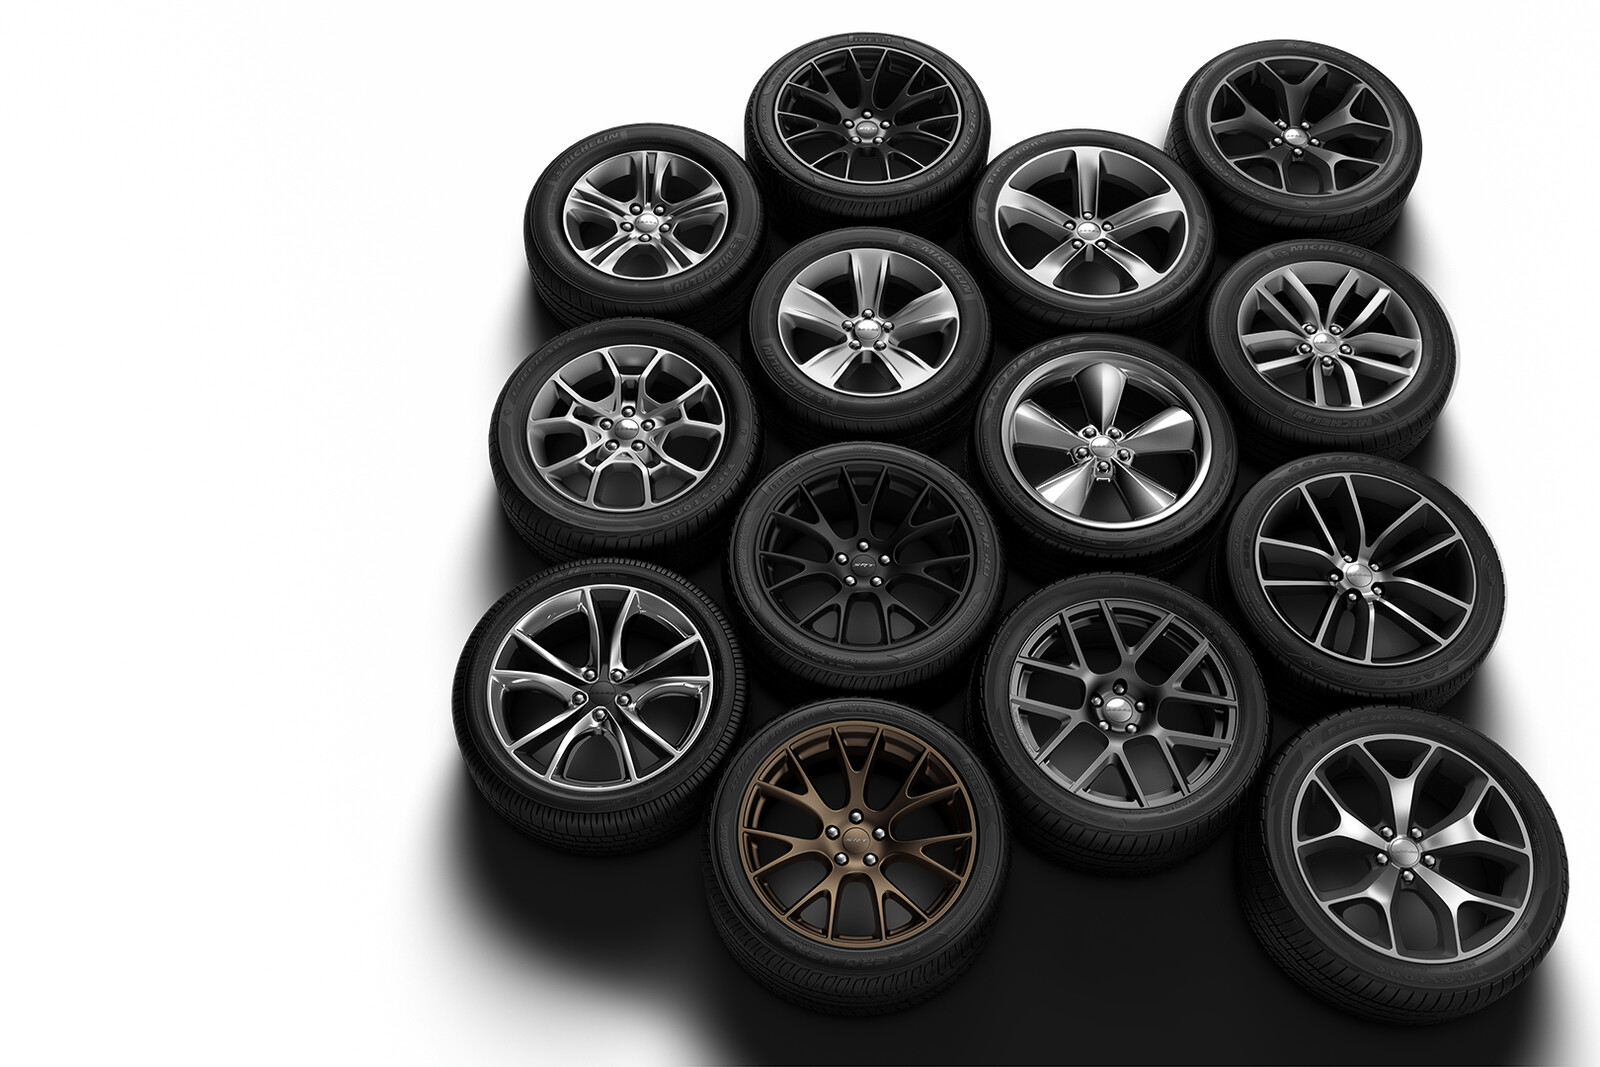 Dodge Challenger Wheels & Tires: Fully CG